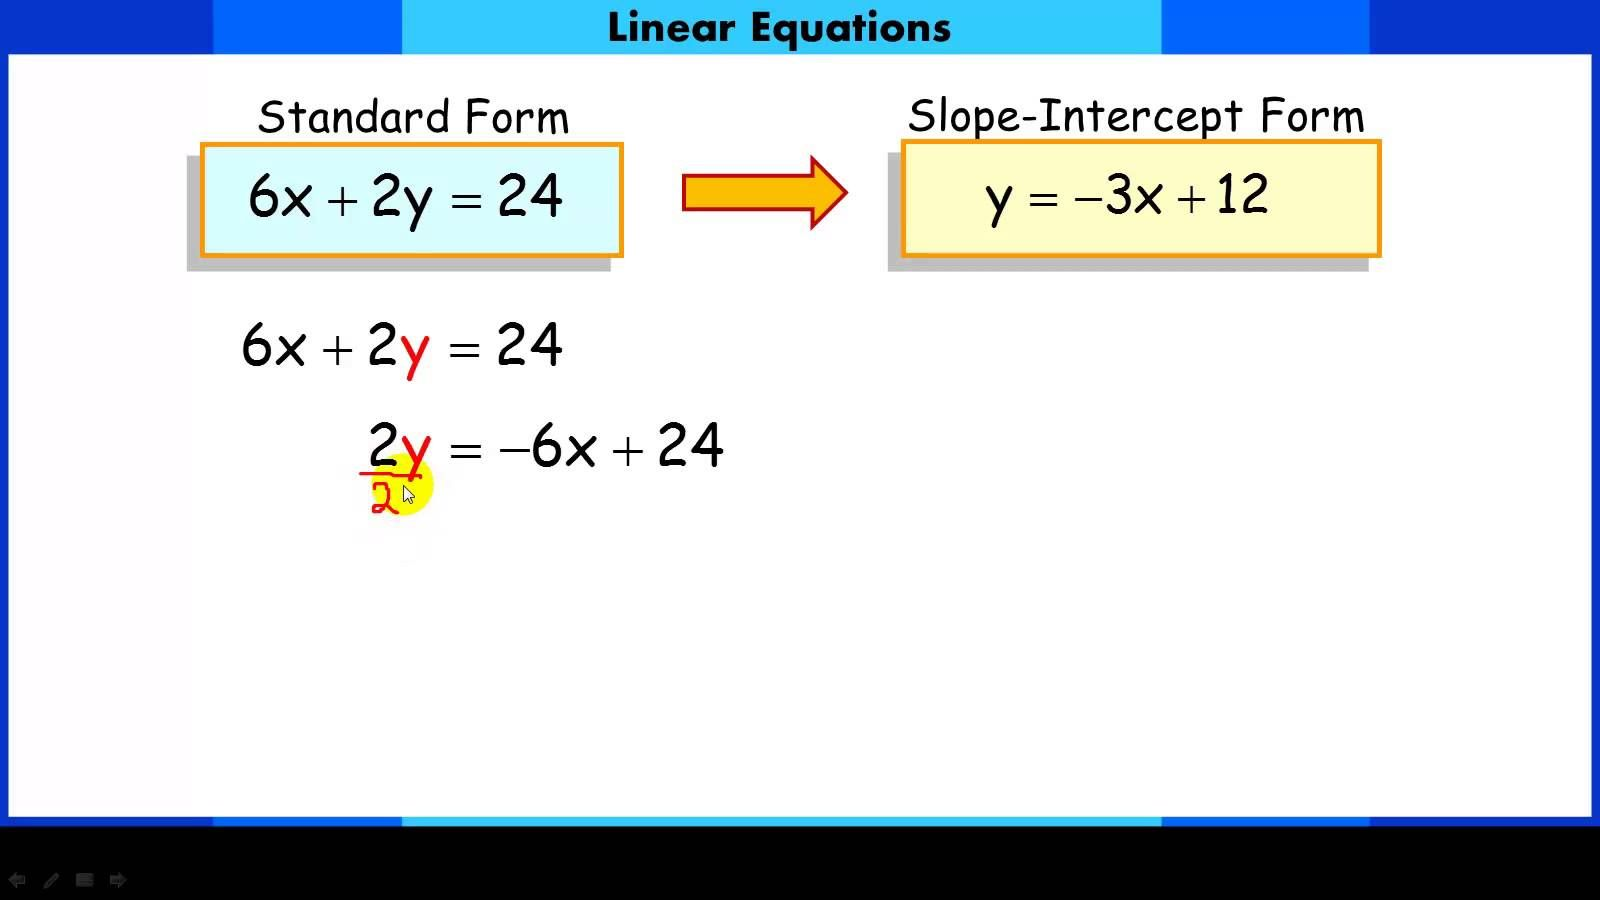 y intercept form to standard form  Converting Linear Equations from Standard Form to Slope ...